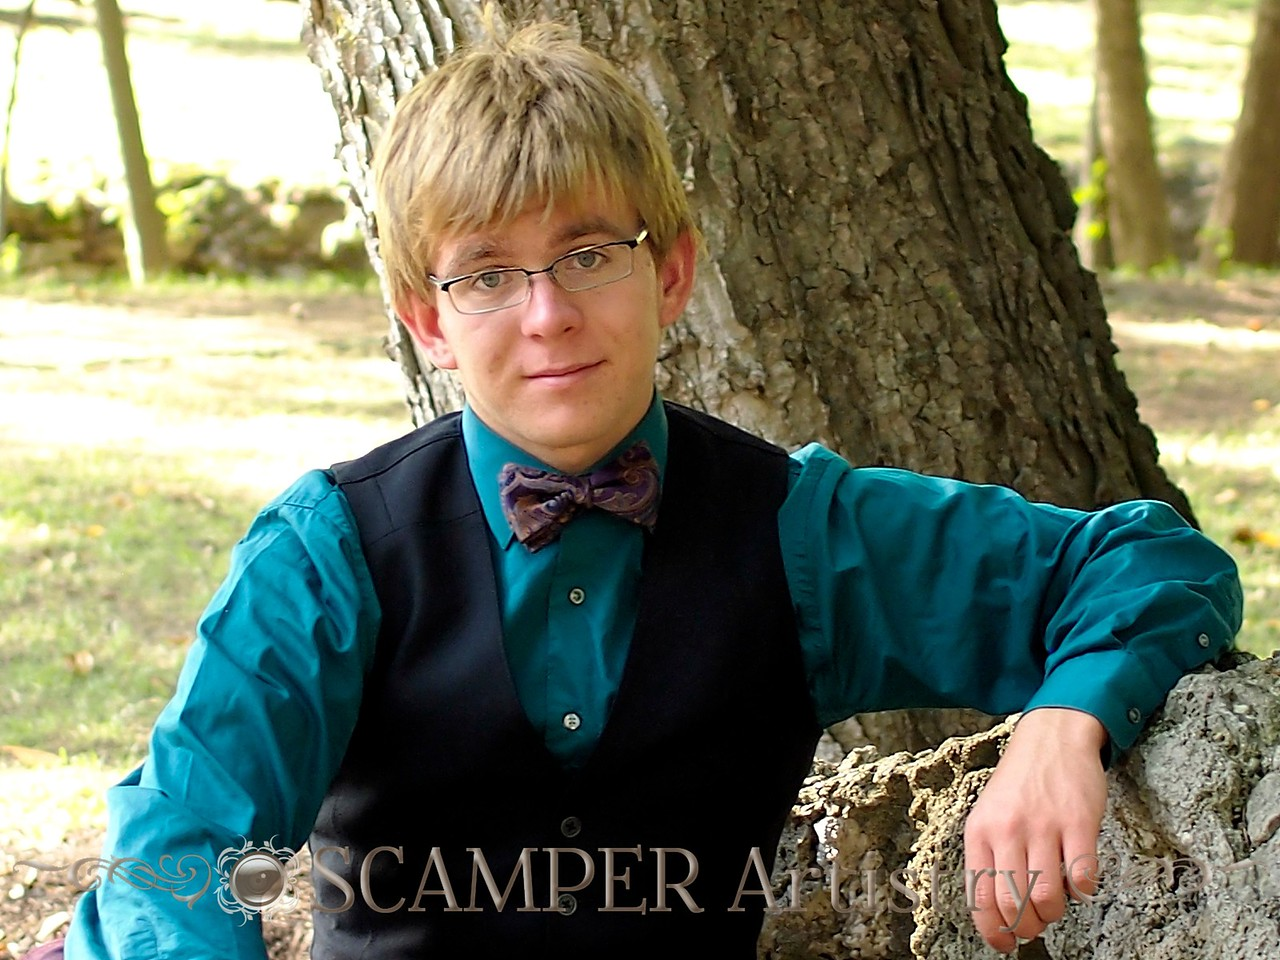 Jared, Class of 2016